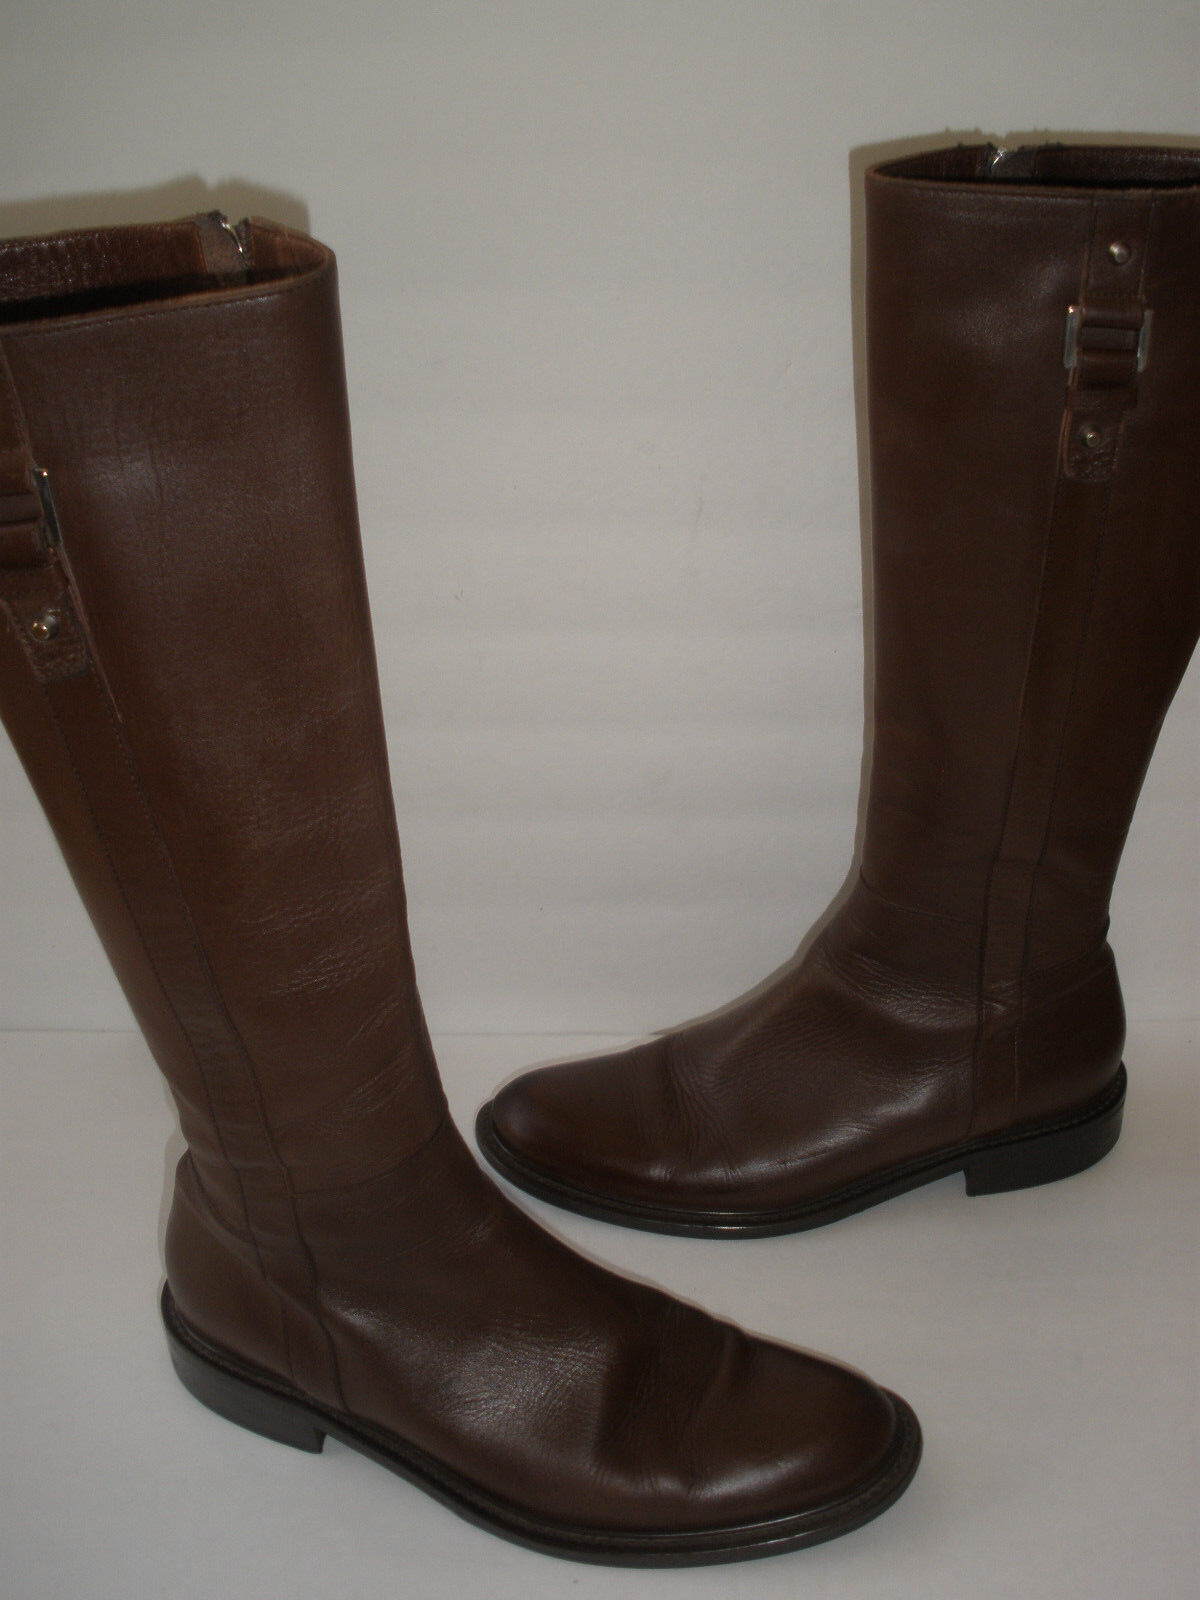 PHILOSOPHY DI ALBERTA FERRETTI RIDING LEATHER BOOT US 8.5-9 EUR 39  ITALY